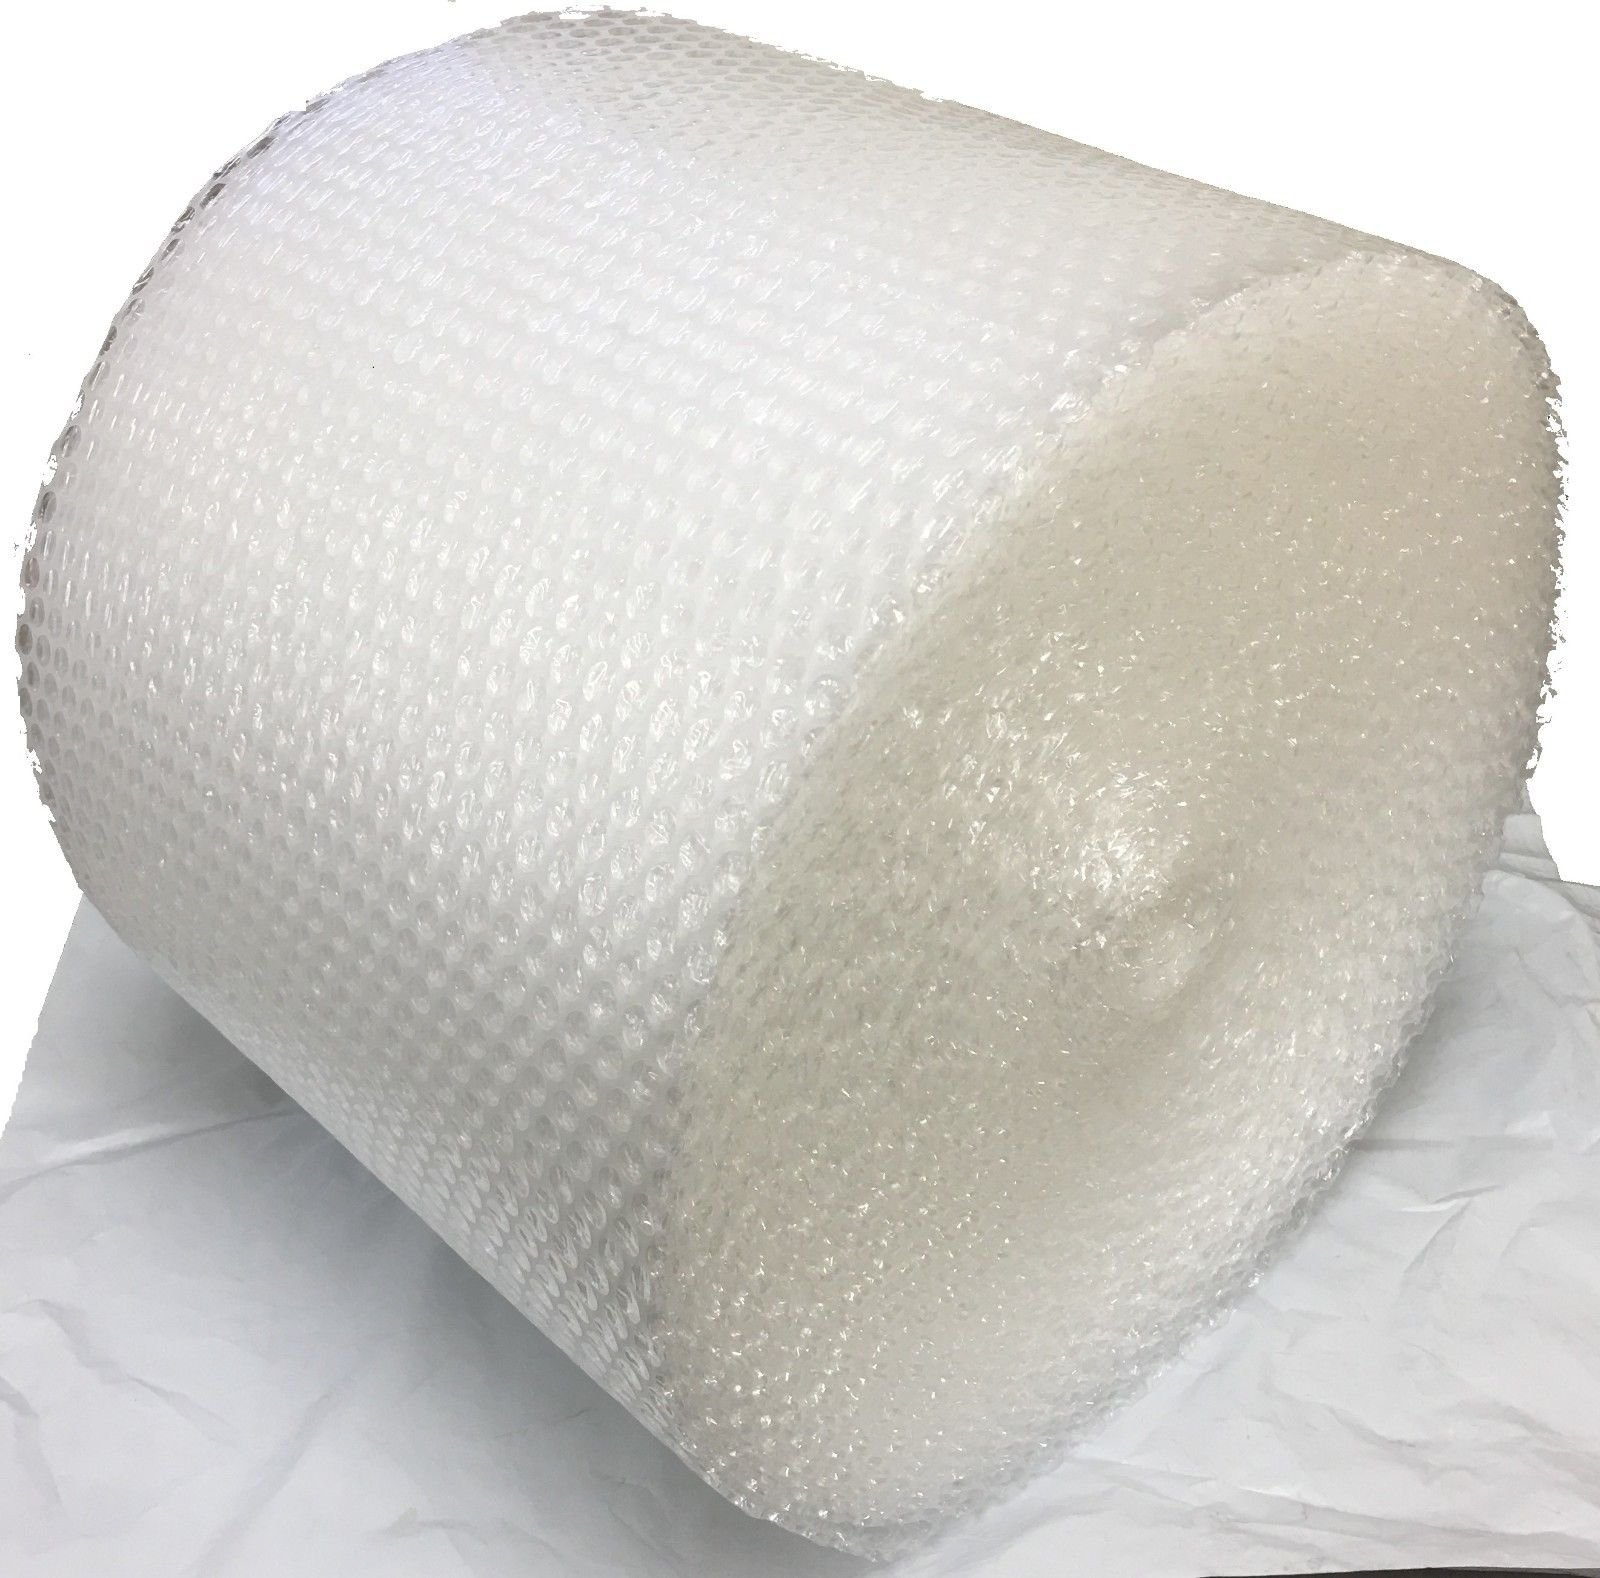 USPACKSHOP 175' 3/16'' Small Bubble Cushioning Wrap Perforated Every 12'', 12'' Wide